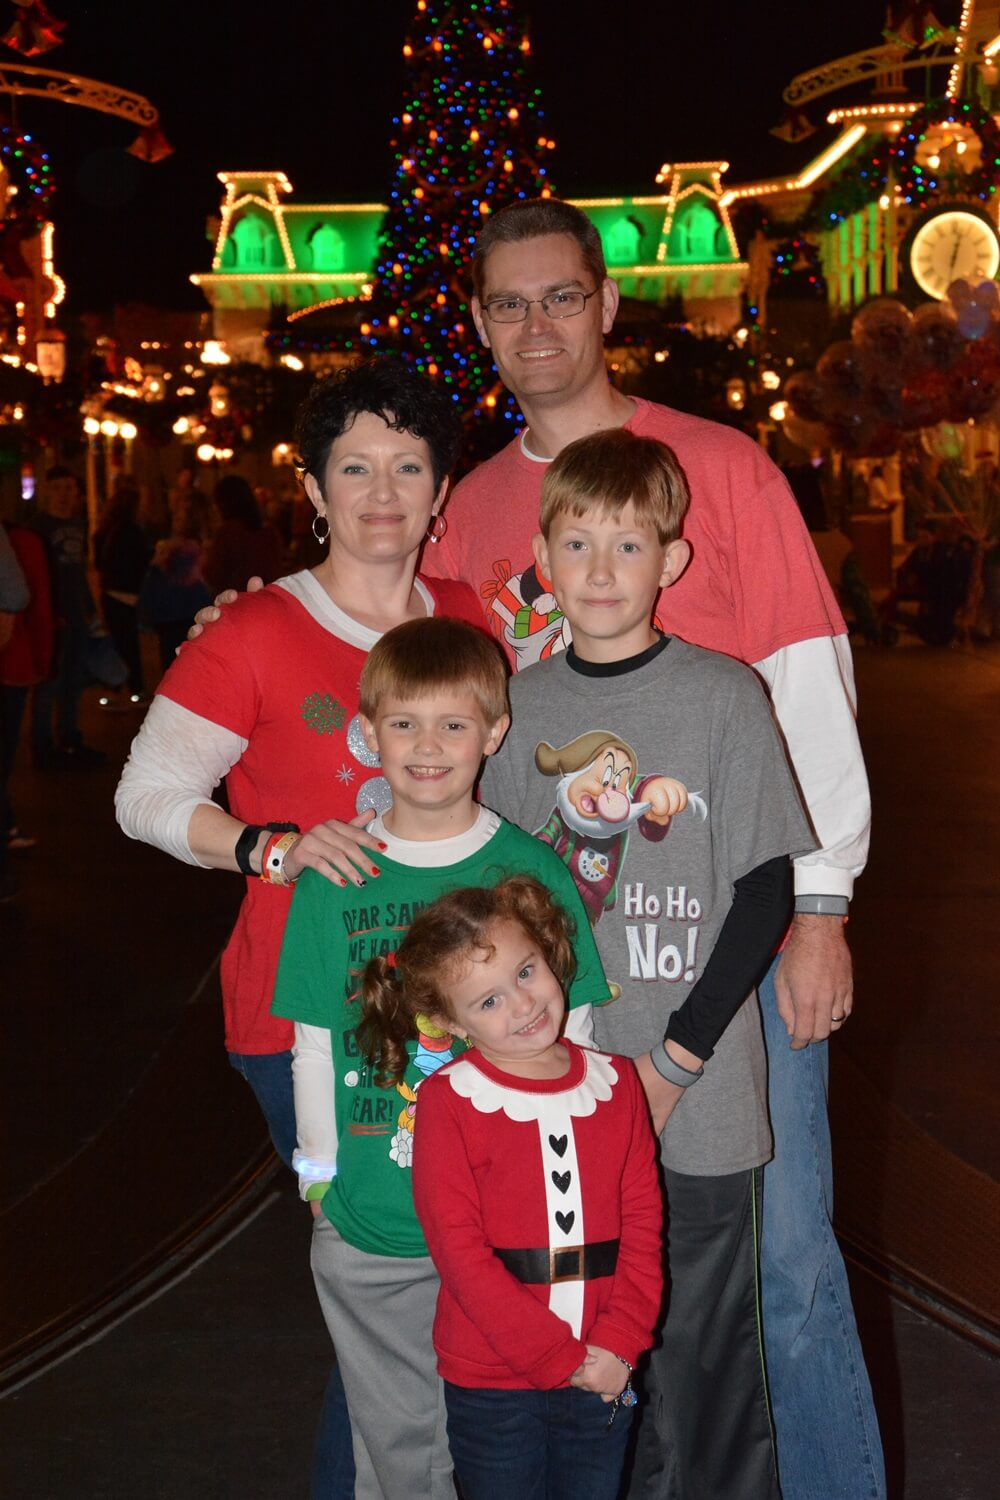 PhotoPass_Visiting_MK_7893980912.jpg